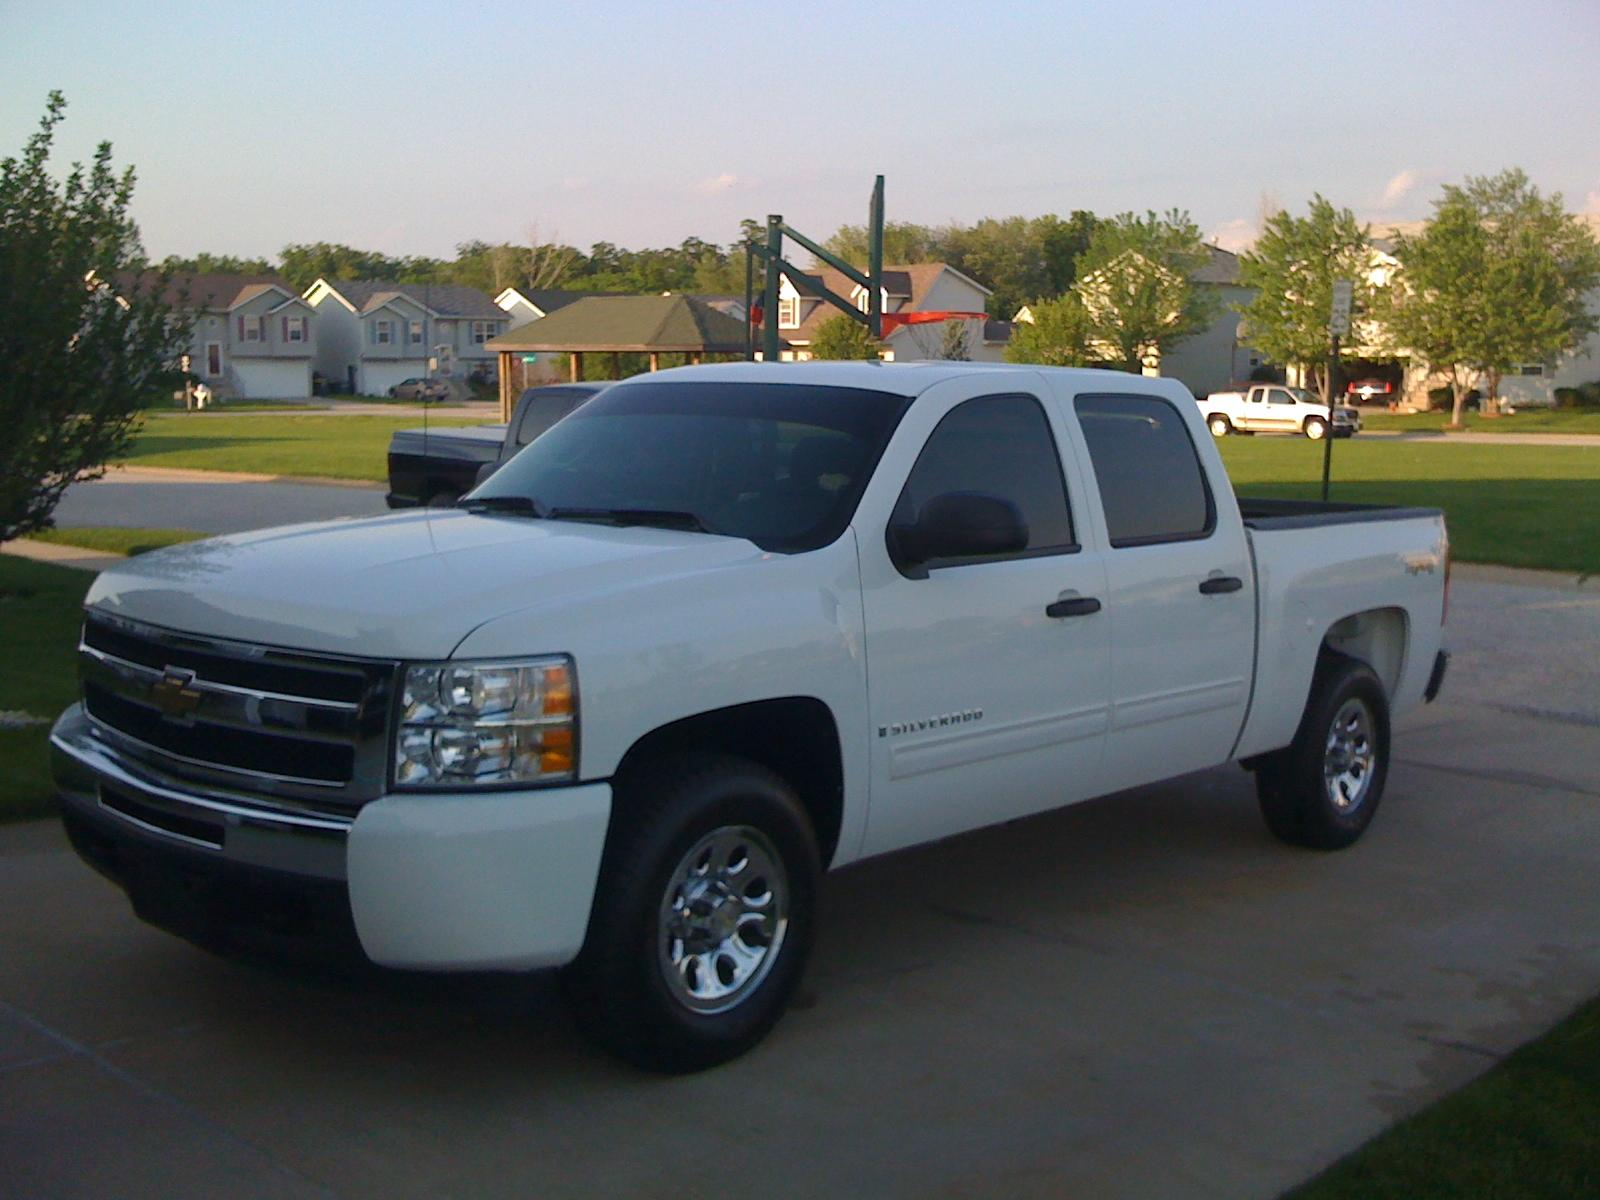 aj misch 2009 chevrolet silverado 1500 crew cab specs. Black Bedroom Furniture Sets. Home Design Ideas